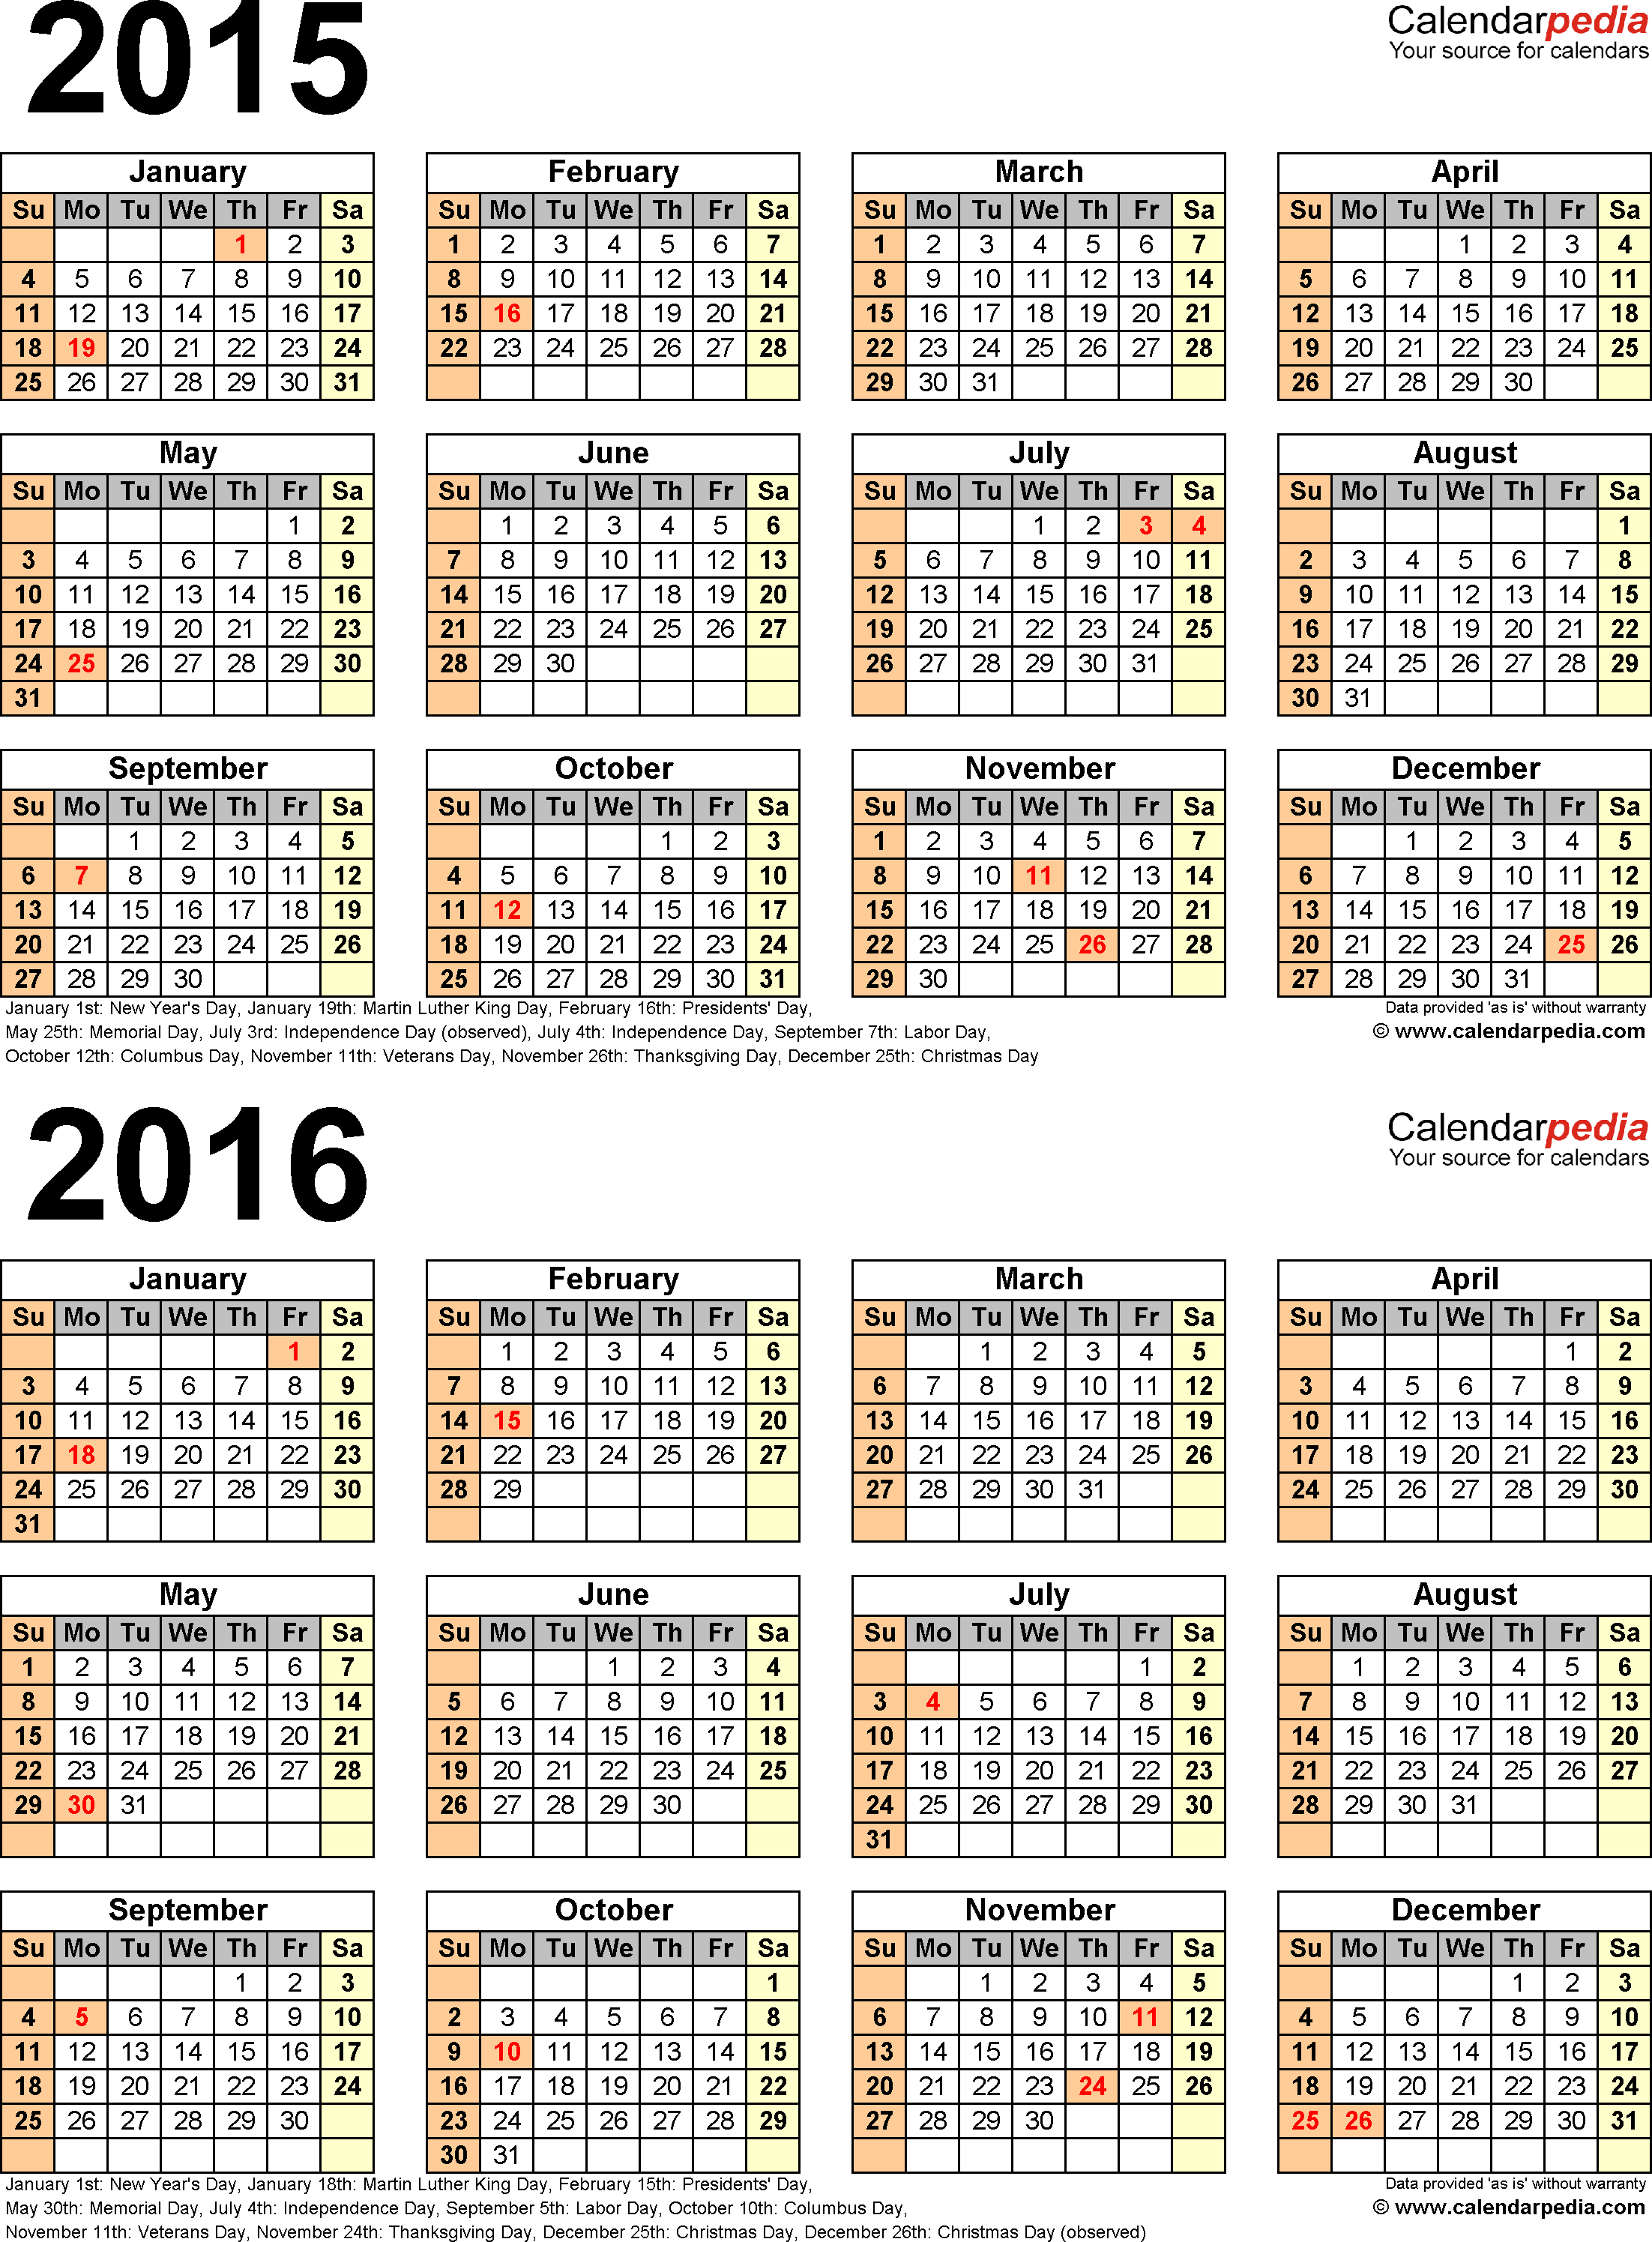 Template 5: PDF template for two year calendar 2015/2016 (portrait orientation, 1 page)